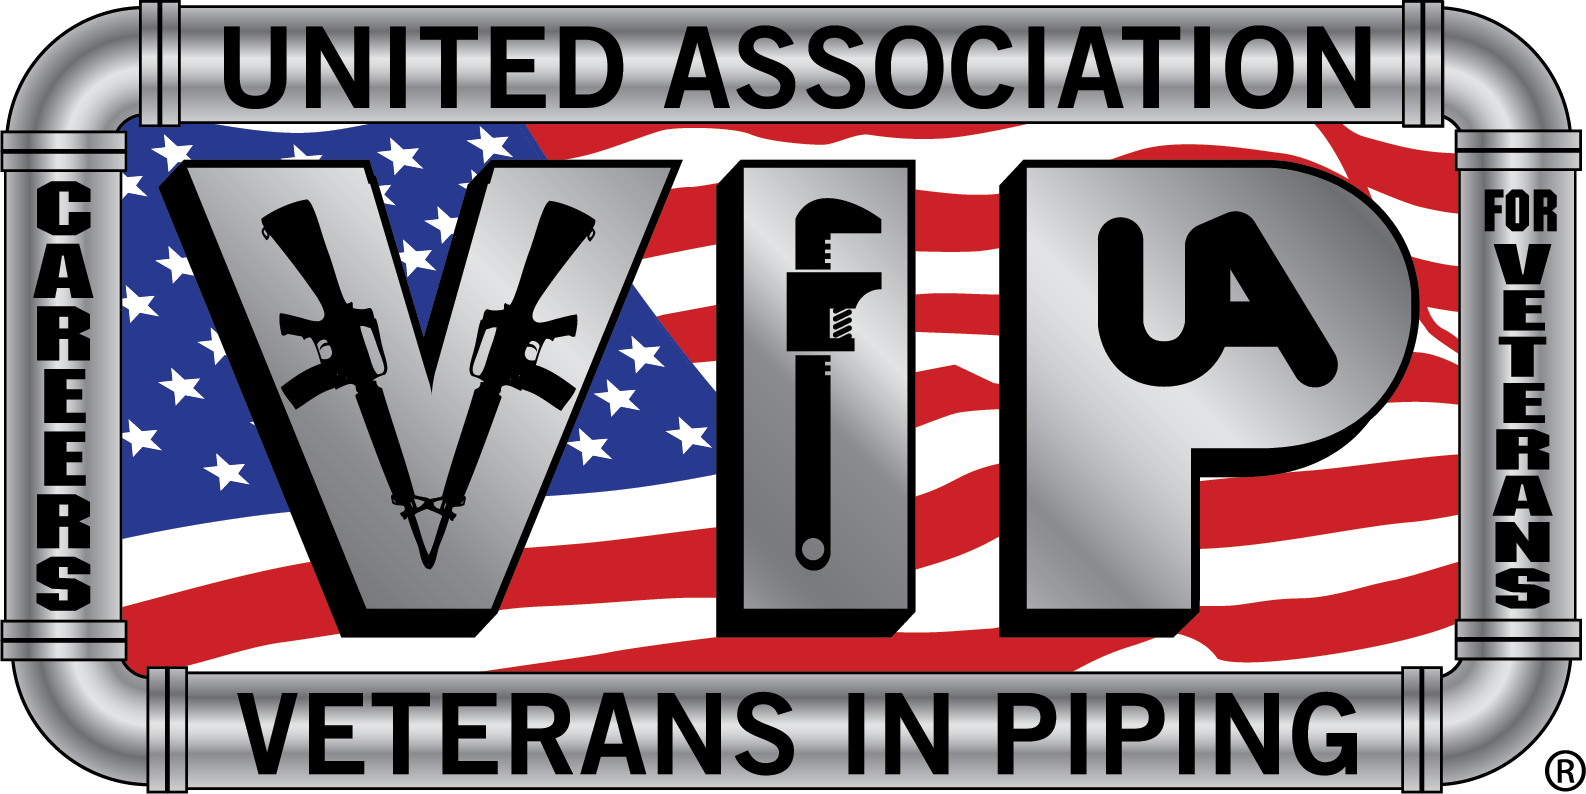 United Association Veterans in Piping - Fort Campbell